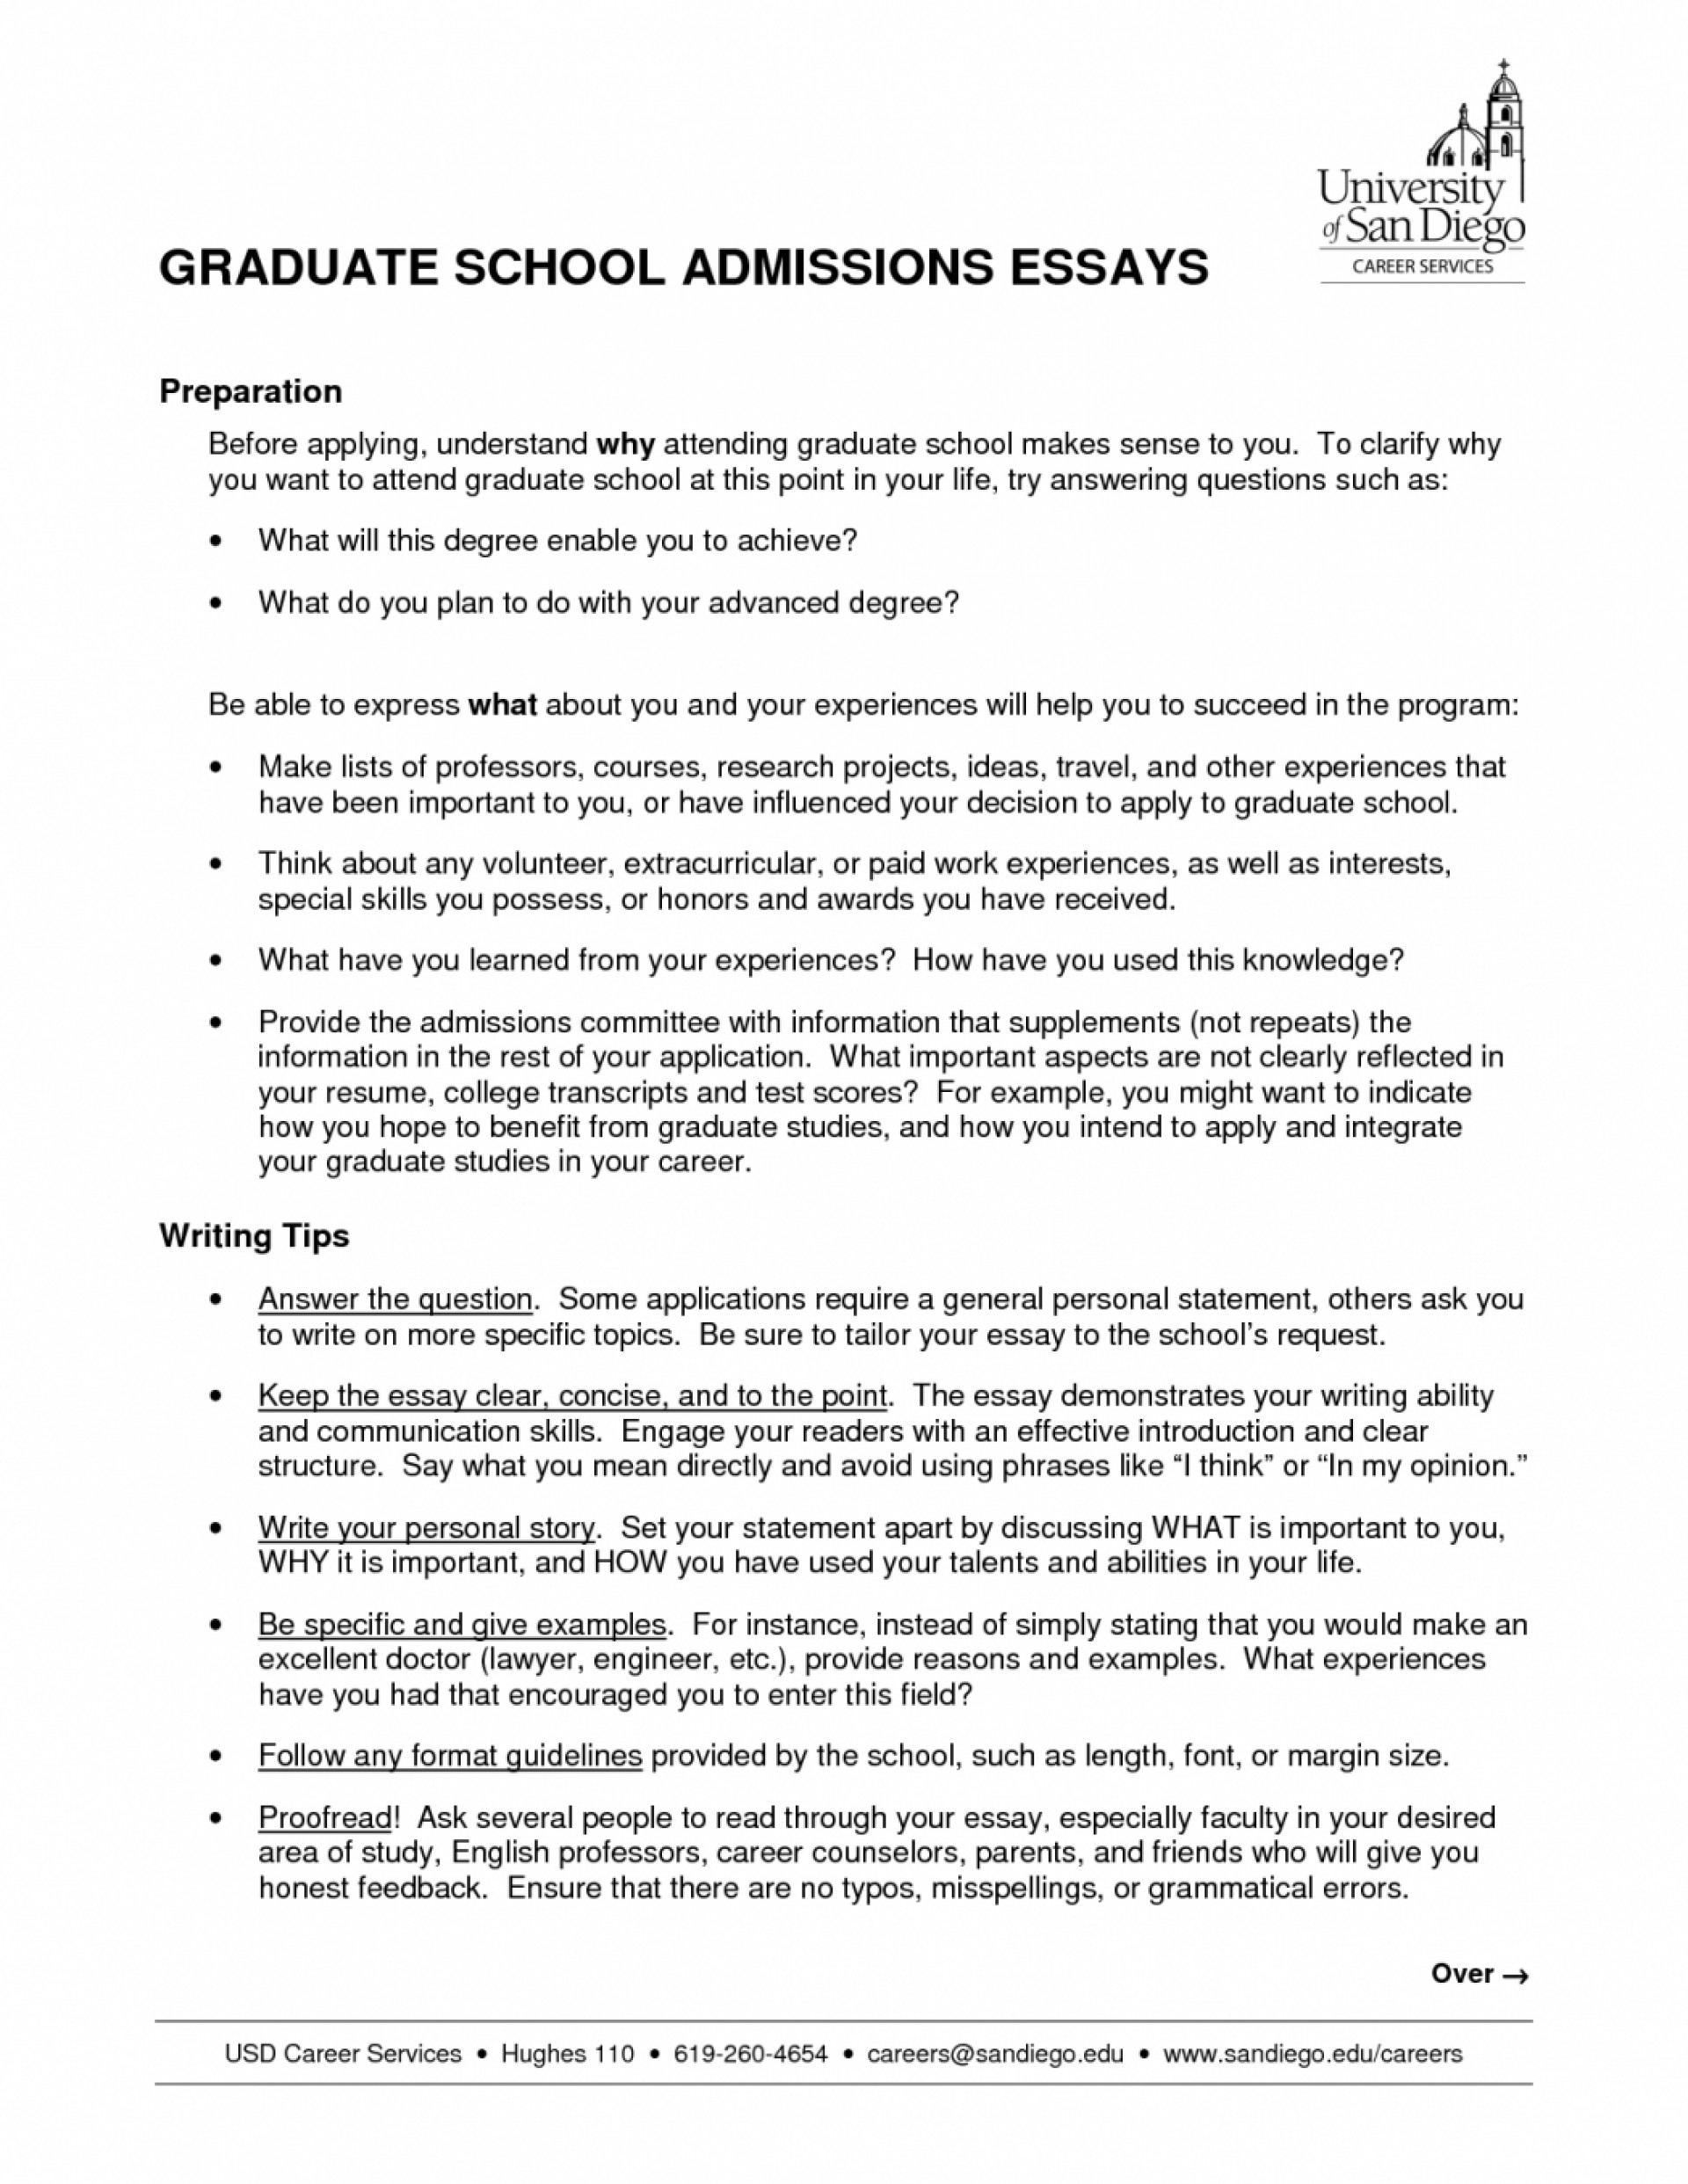 010 Essay Example Graduate School Format Grad Application Mersn Proforum Co Lic3k Examples Mba Tips Sample Writing Service Questions Counseling Free Heading Remarkable Personal Samples 1920